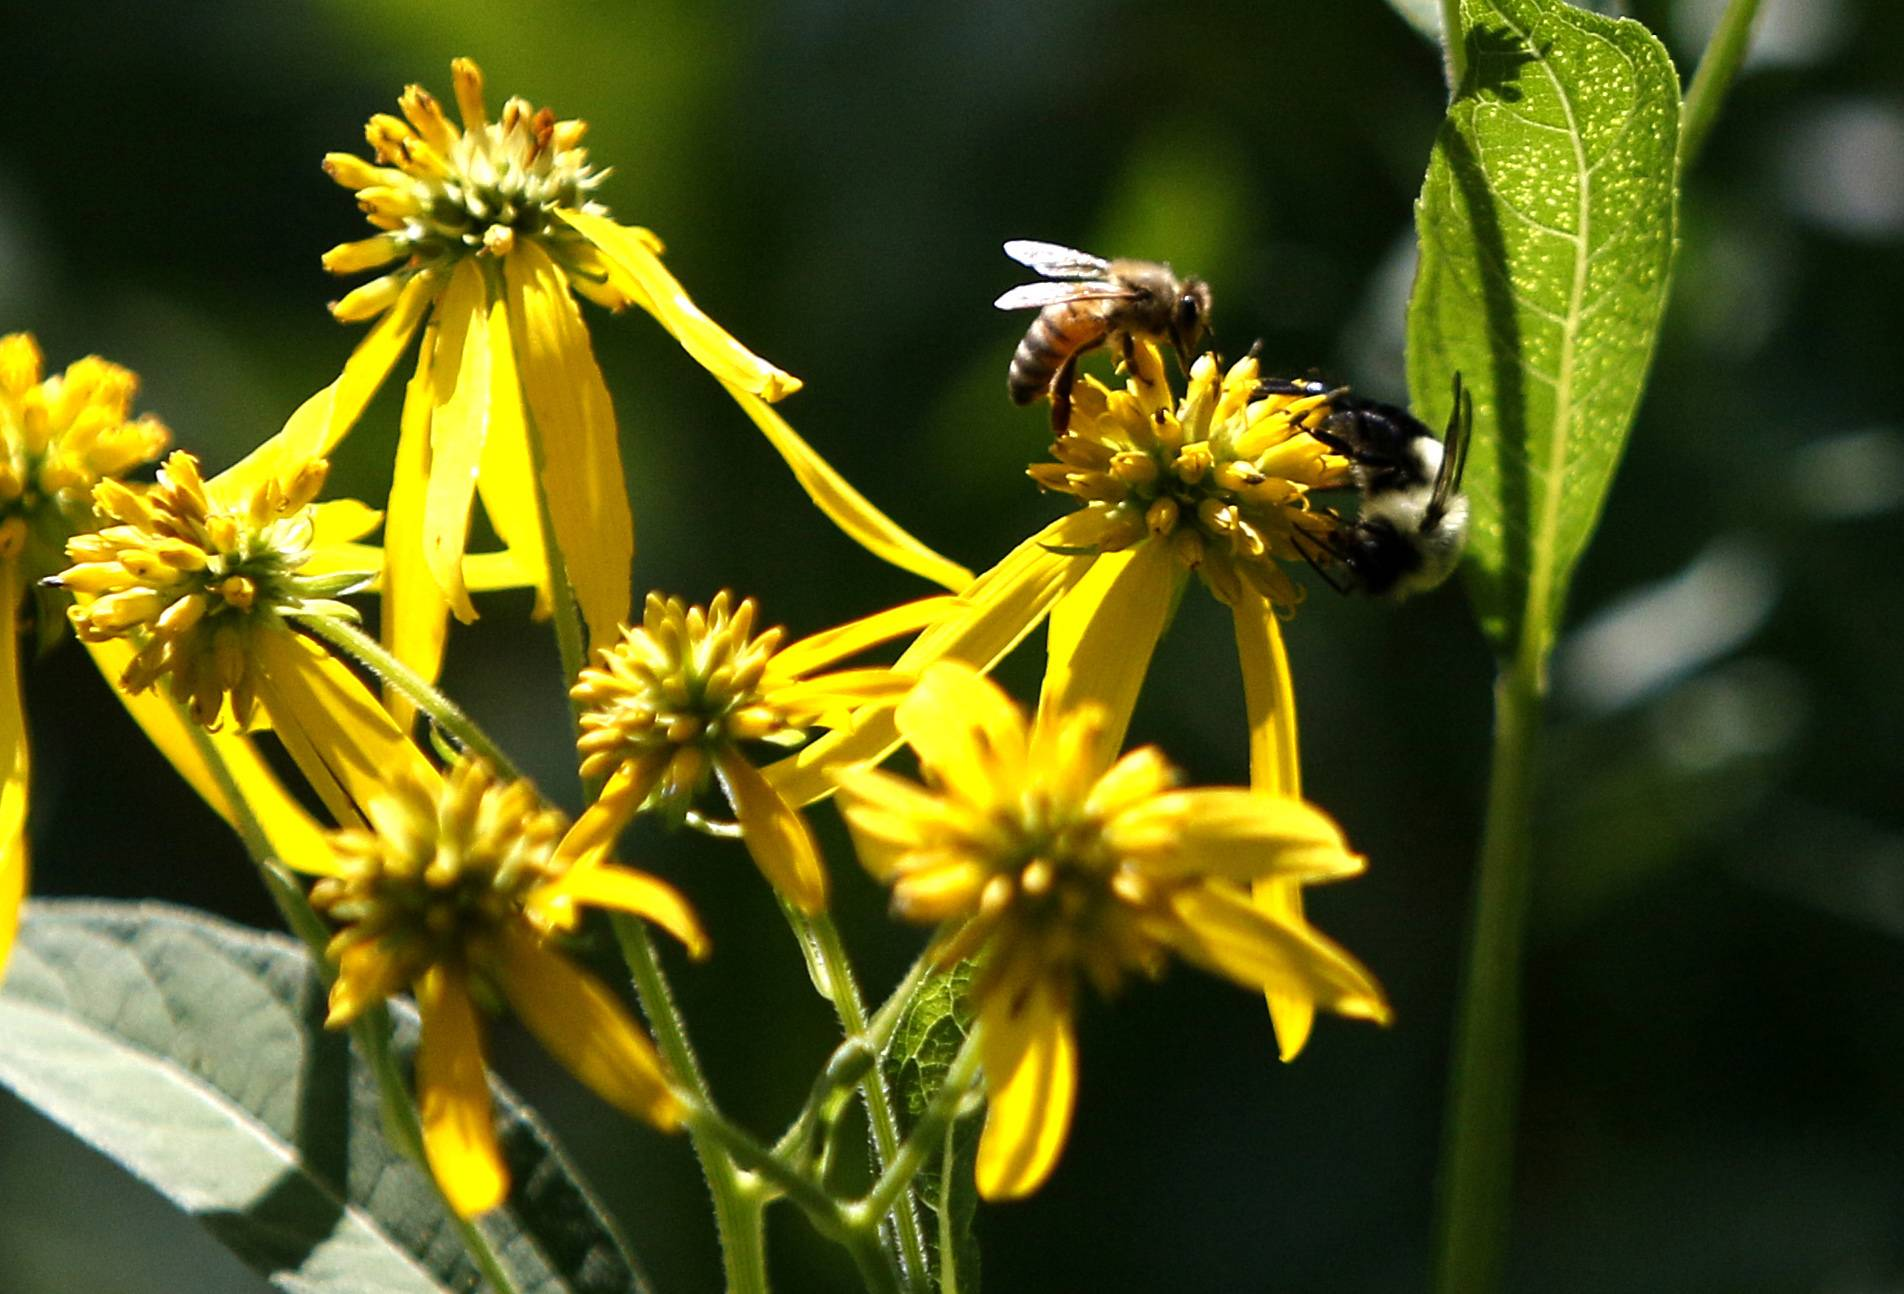 Several species of bees occupy the same flower in a prairie area at North Central College along the DuPage River.